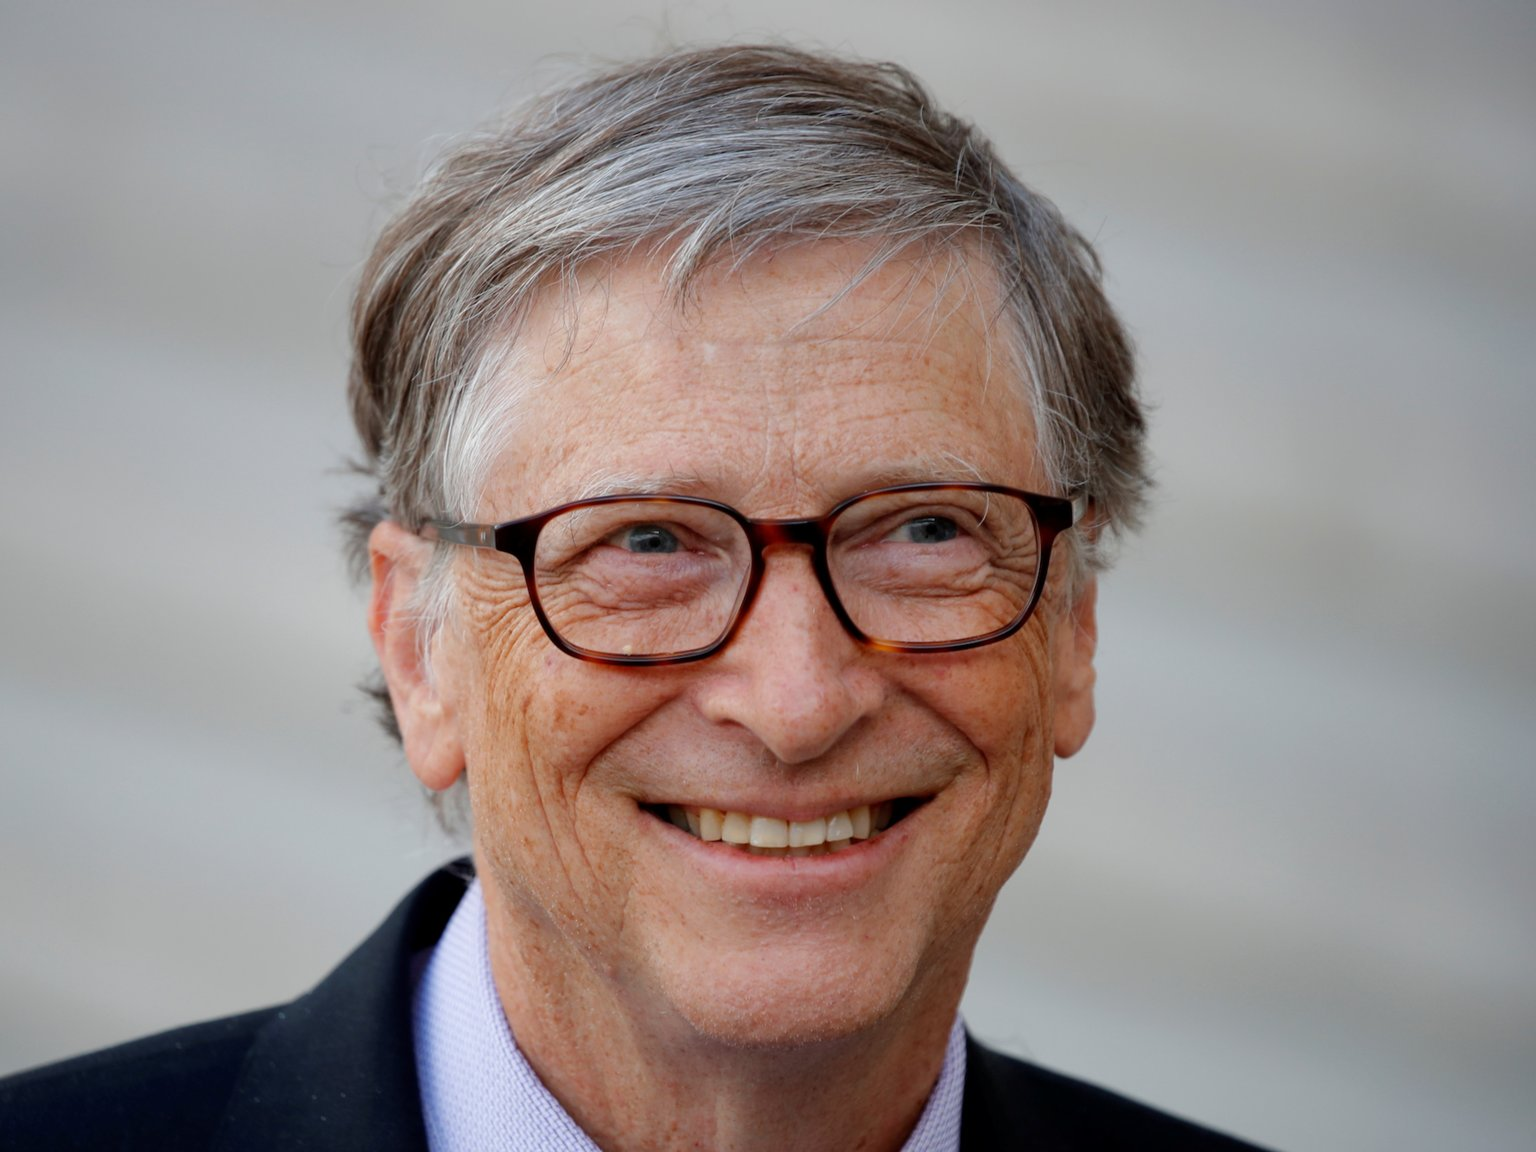 By 2014, Microsoft founder Bill Gates had already shown avid interest in cryptocurrency in an interview with Bloomberg.  REUTERS/Charles Platiau